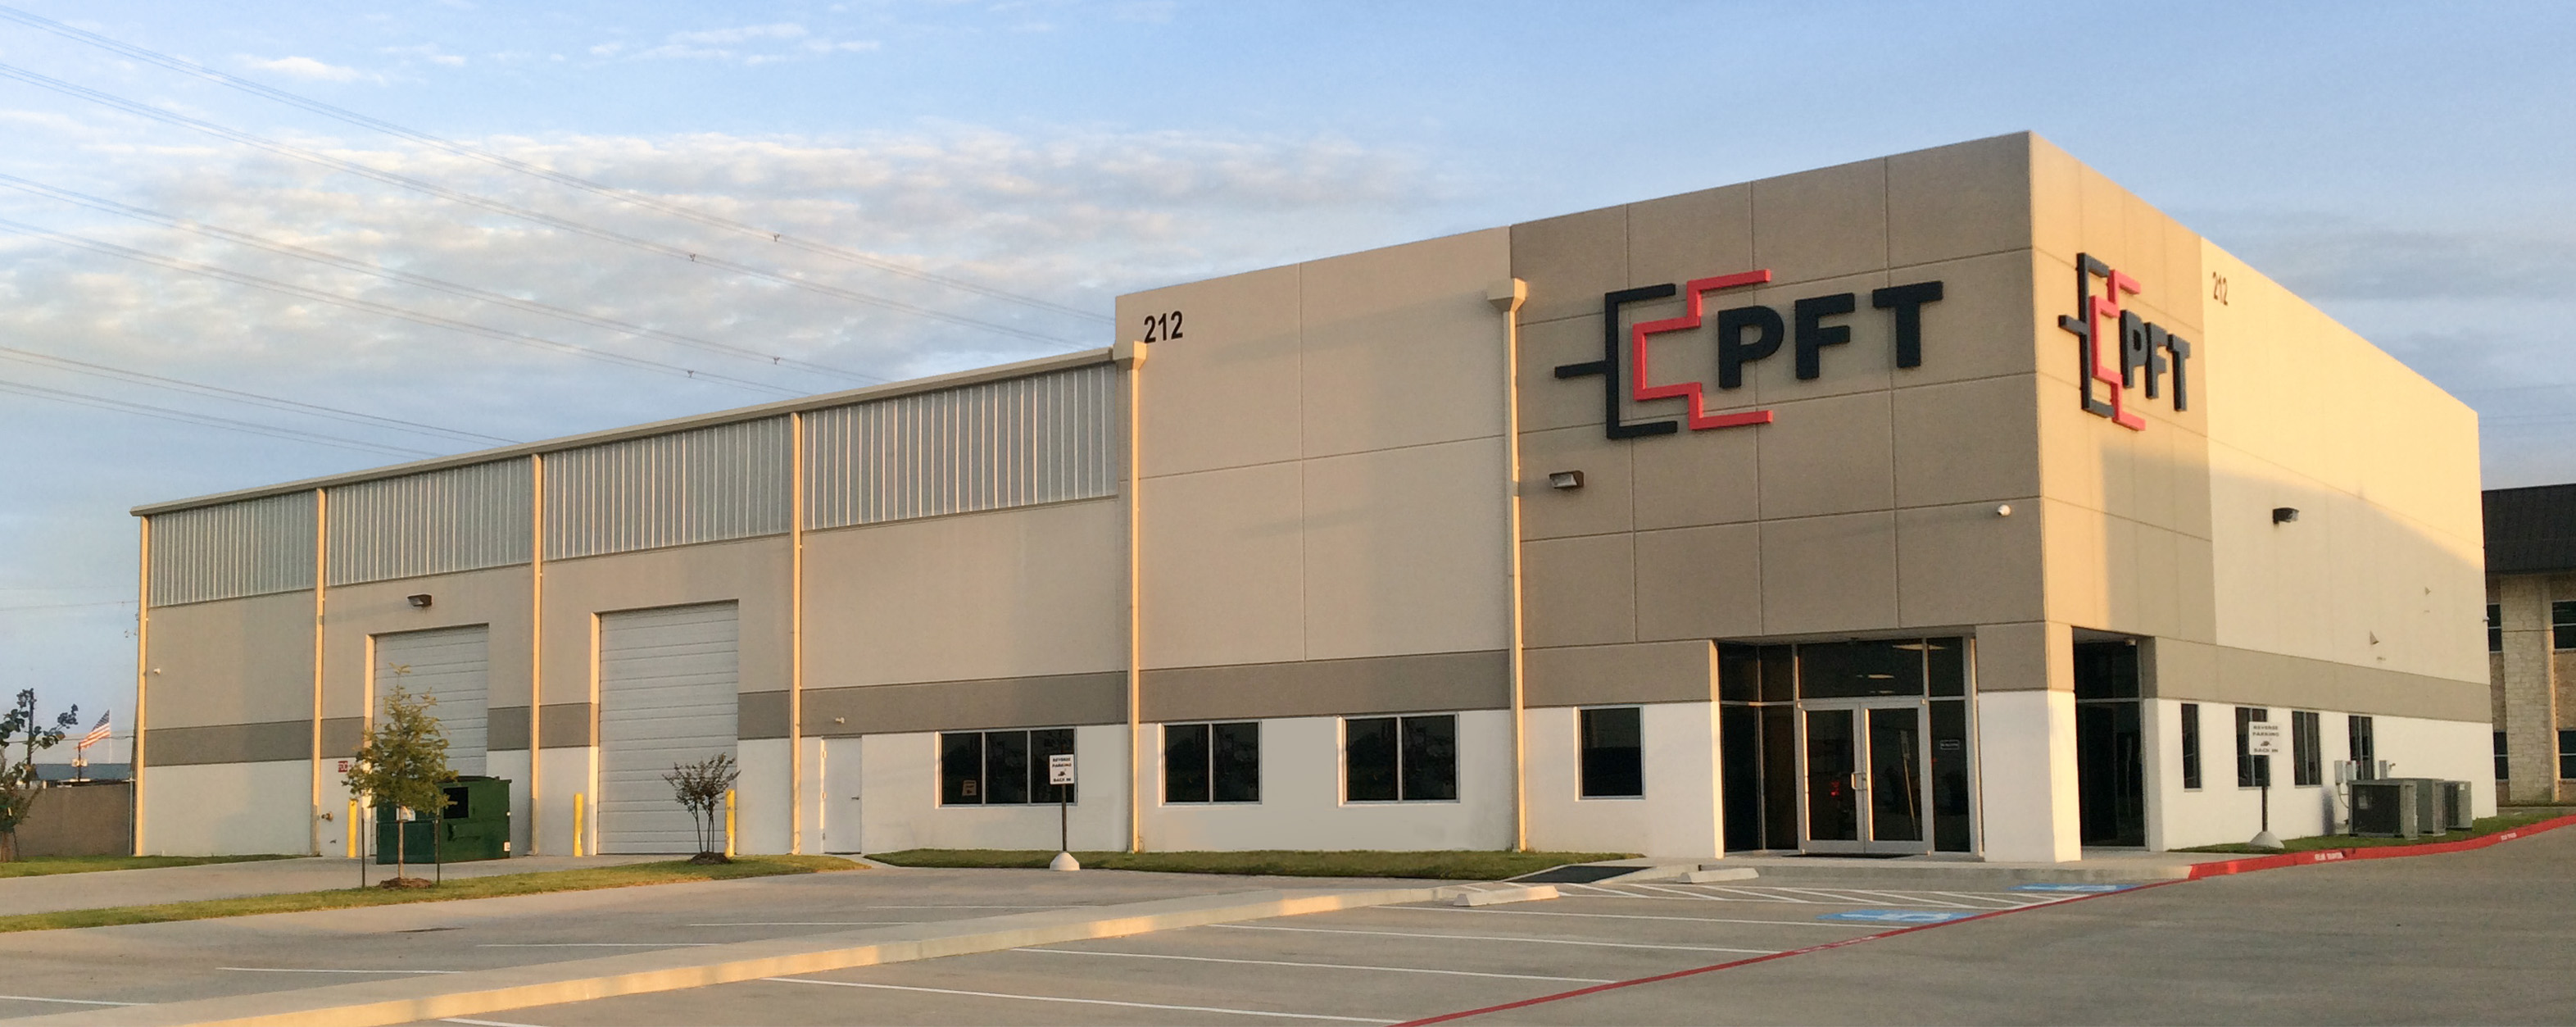 PFT Headquarter Building